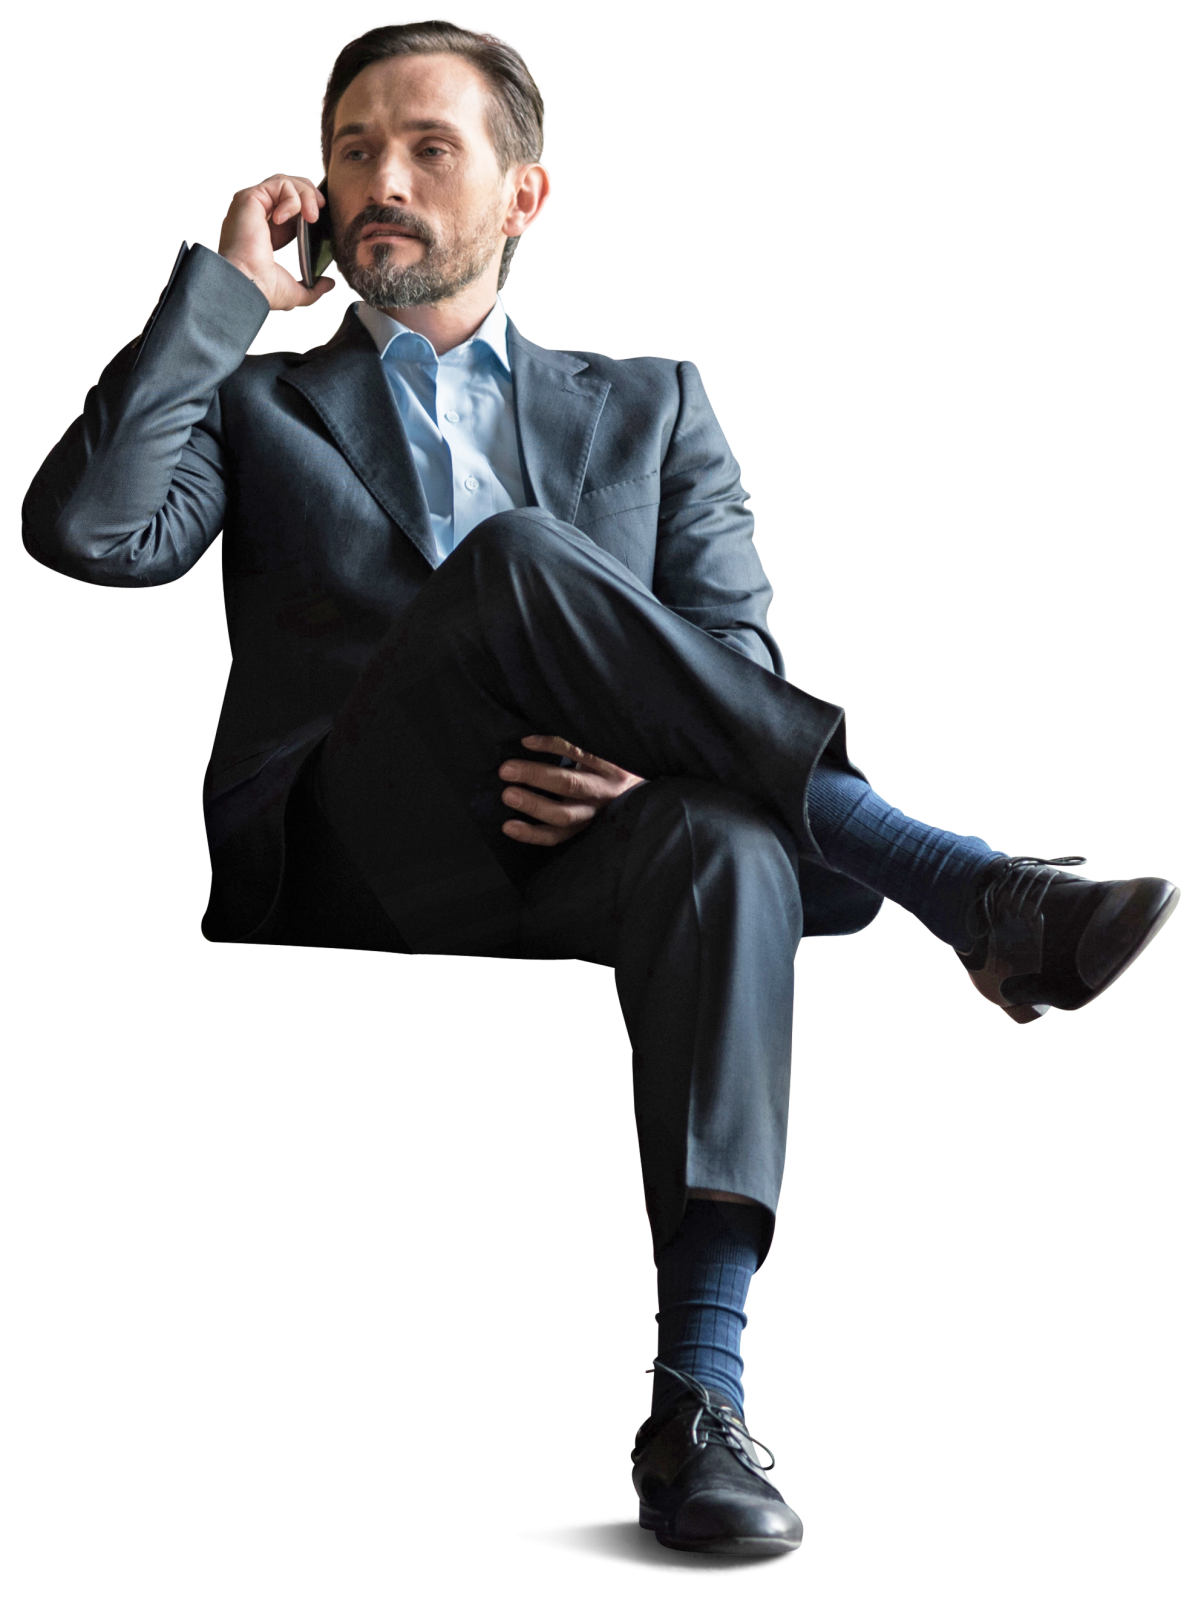 businessman full body png